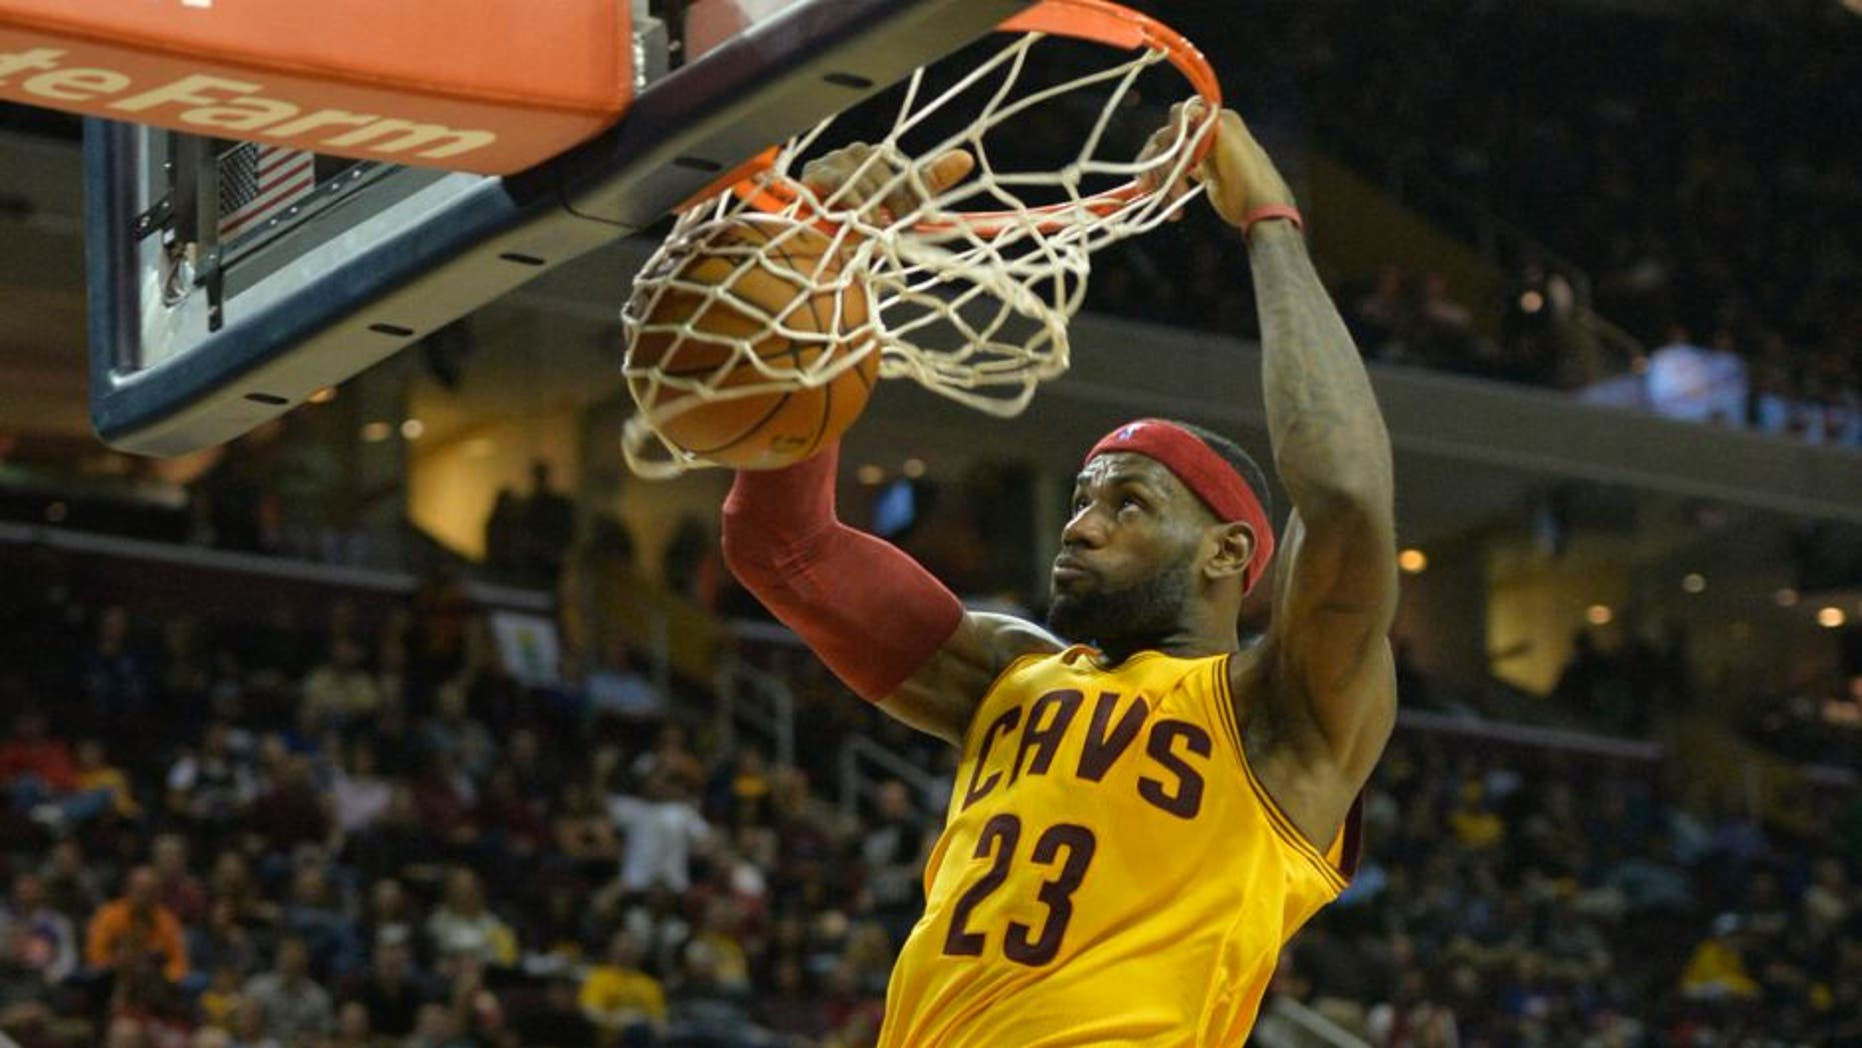 Oct 17, 2014; Cleveland, OH, USA; Cleveland Cavaliers forward LeBron James (23) dunks in the third quarter against the Dallas Mavericks at Quicken Loans Arena. After a video review by officials, the basket was taken away due to a foul before the score. Mandatory Credit: David Richard-USA TODAY Sports